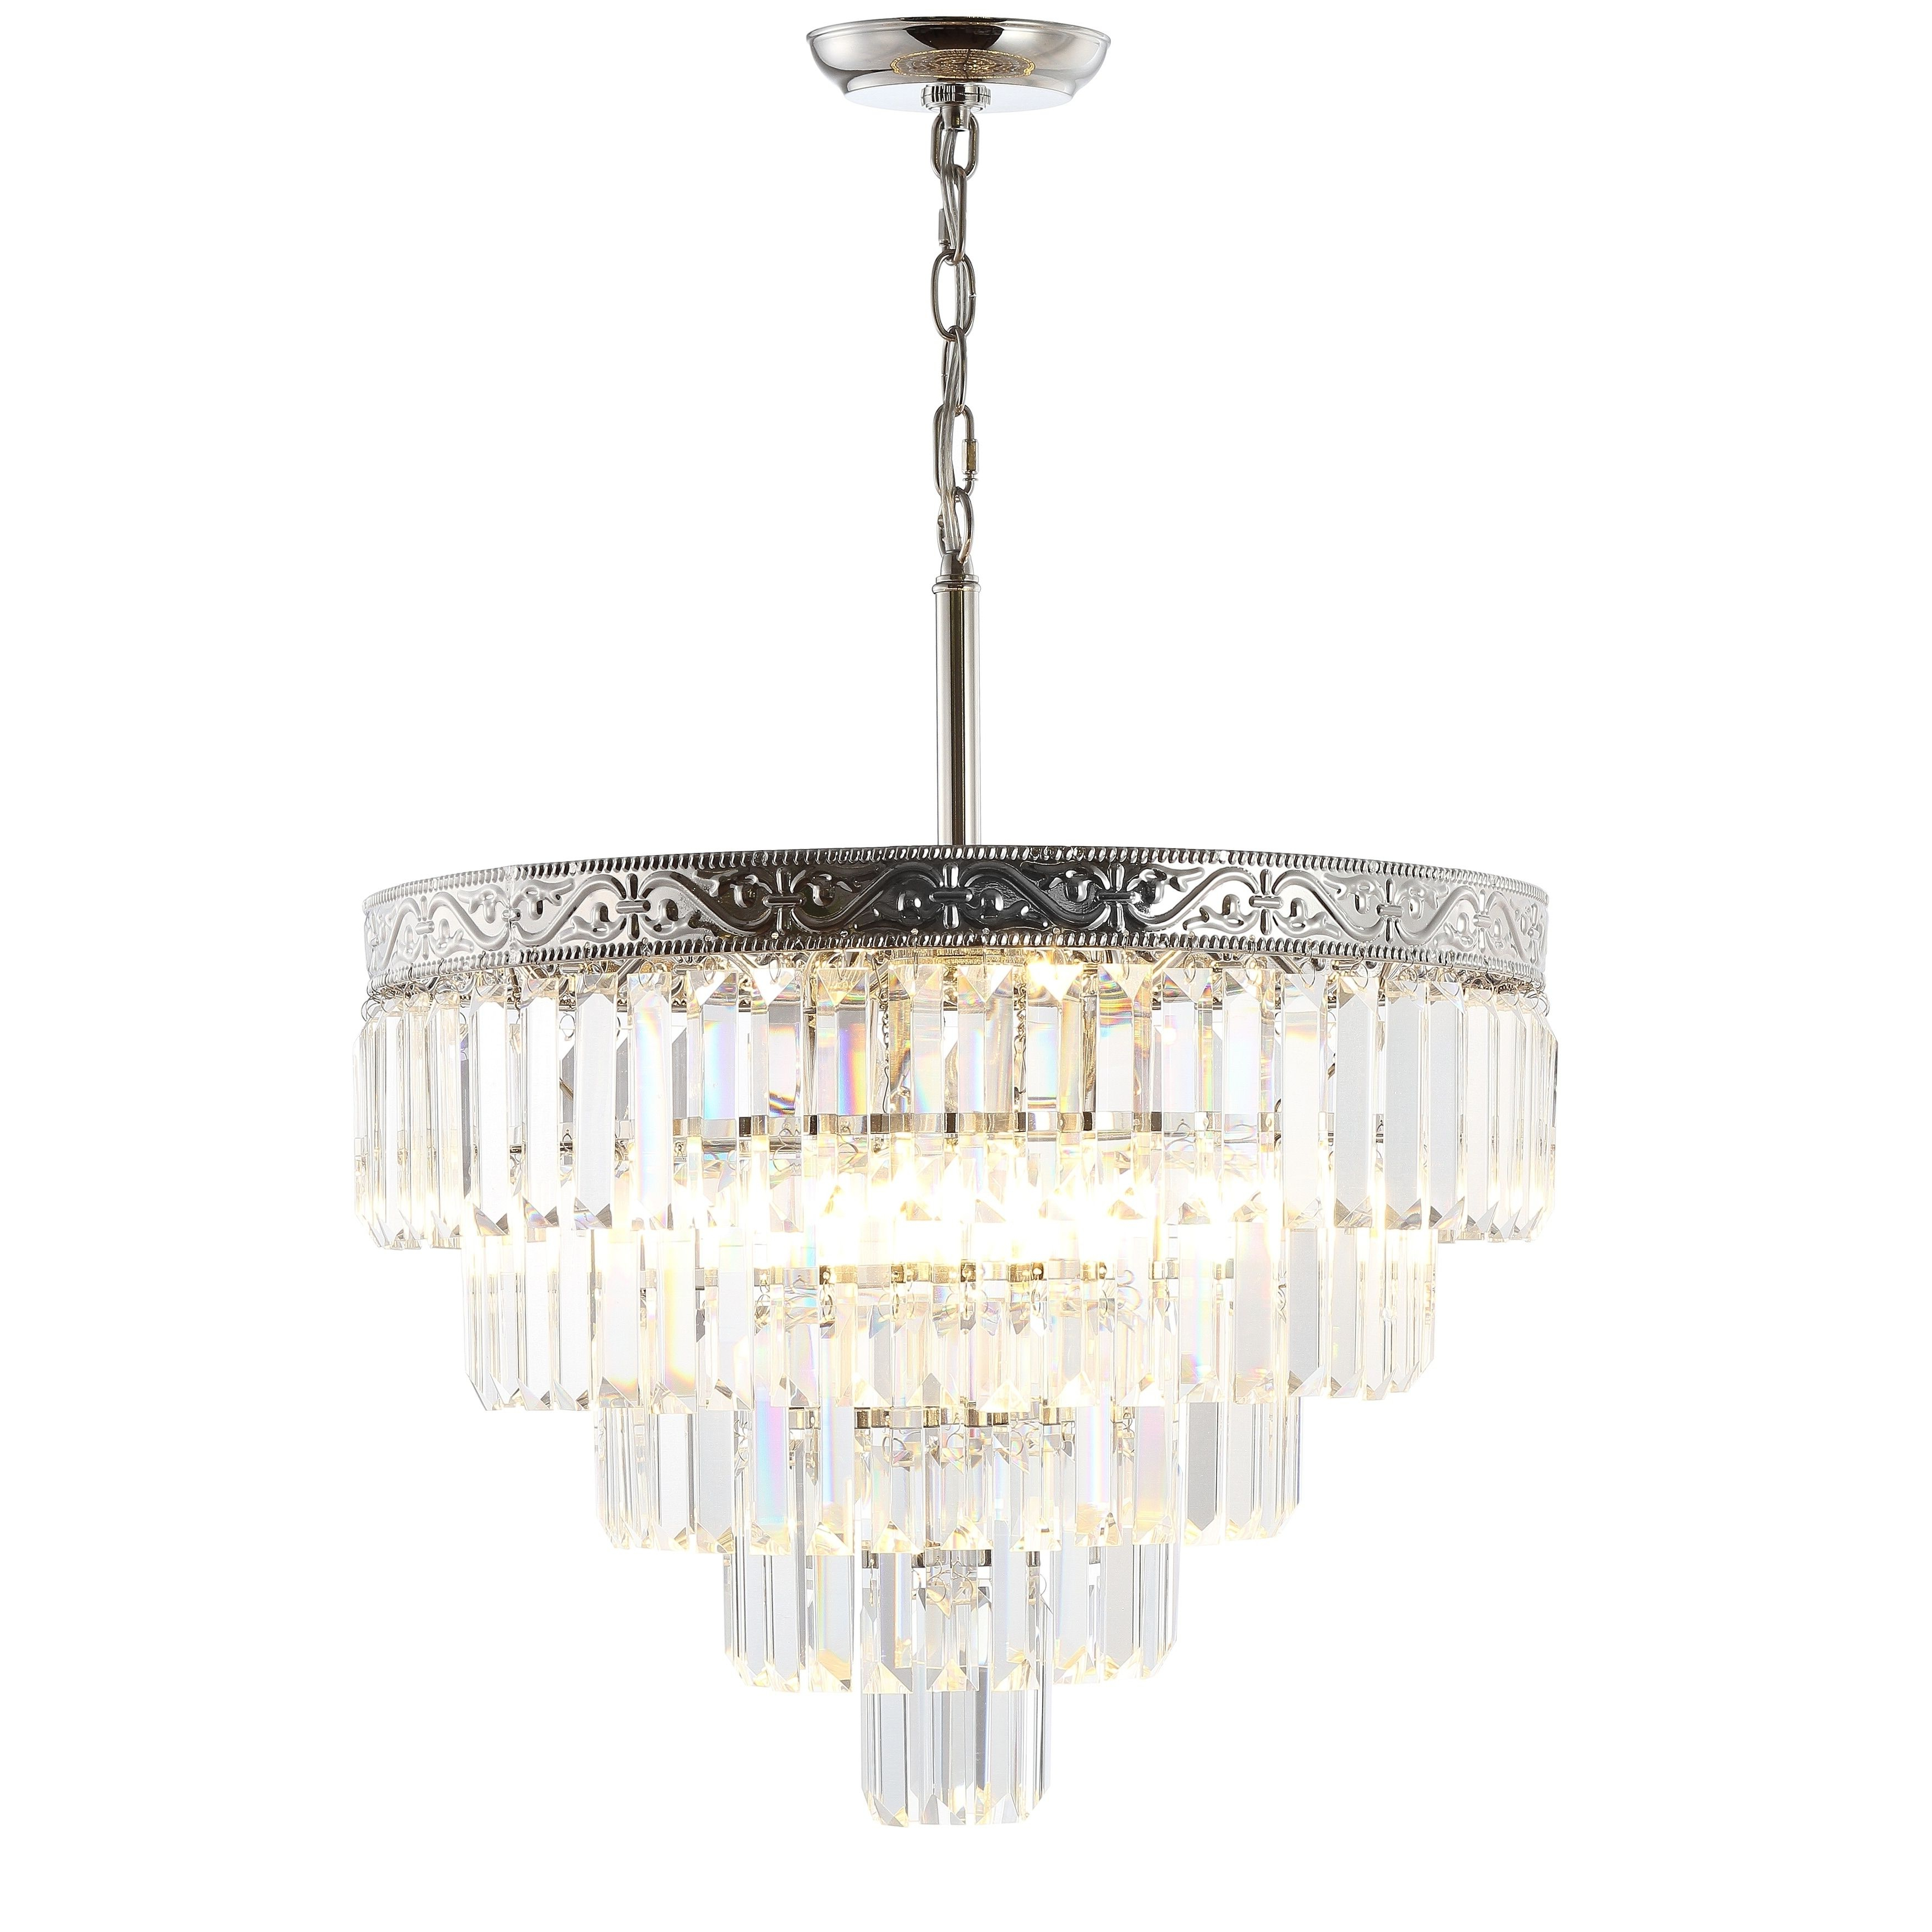 Gisselle 4 Light Drum Chandeliers Throughout Well Known Jonathan Y Wyatt 20 4 Light Crystal Led Chandelier, Polished (View 7 of 20)